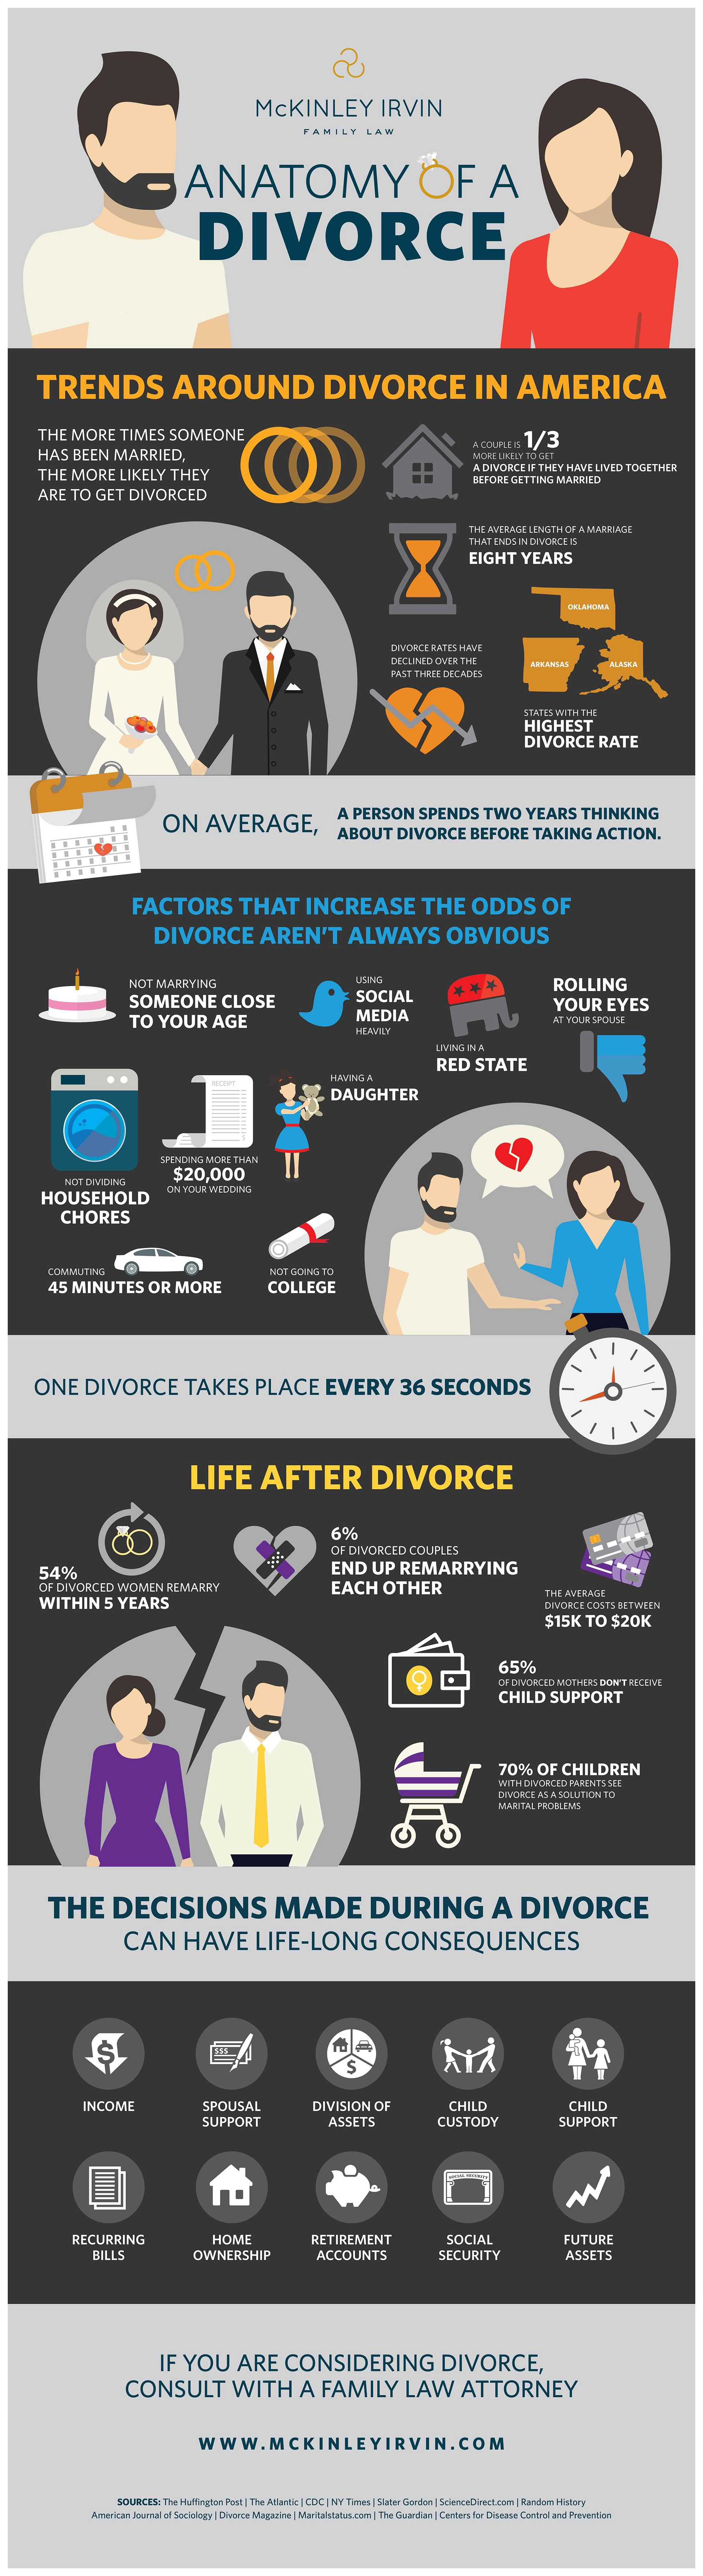 Updated-Anatomy-of-a-Divorce